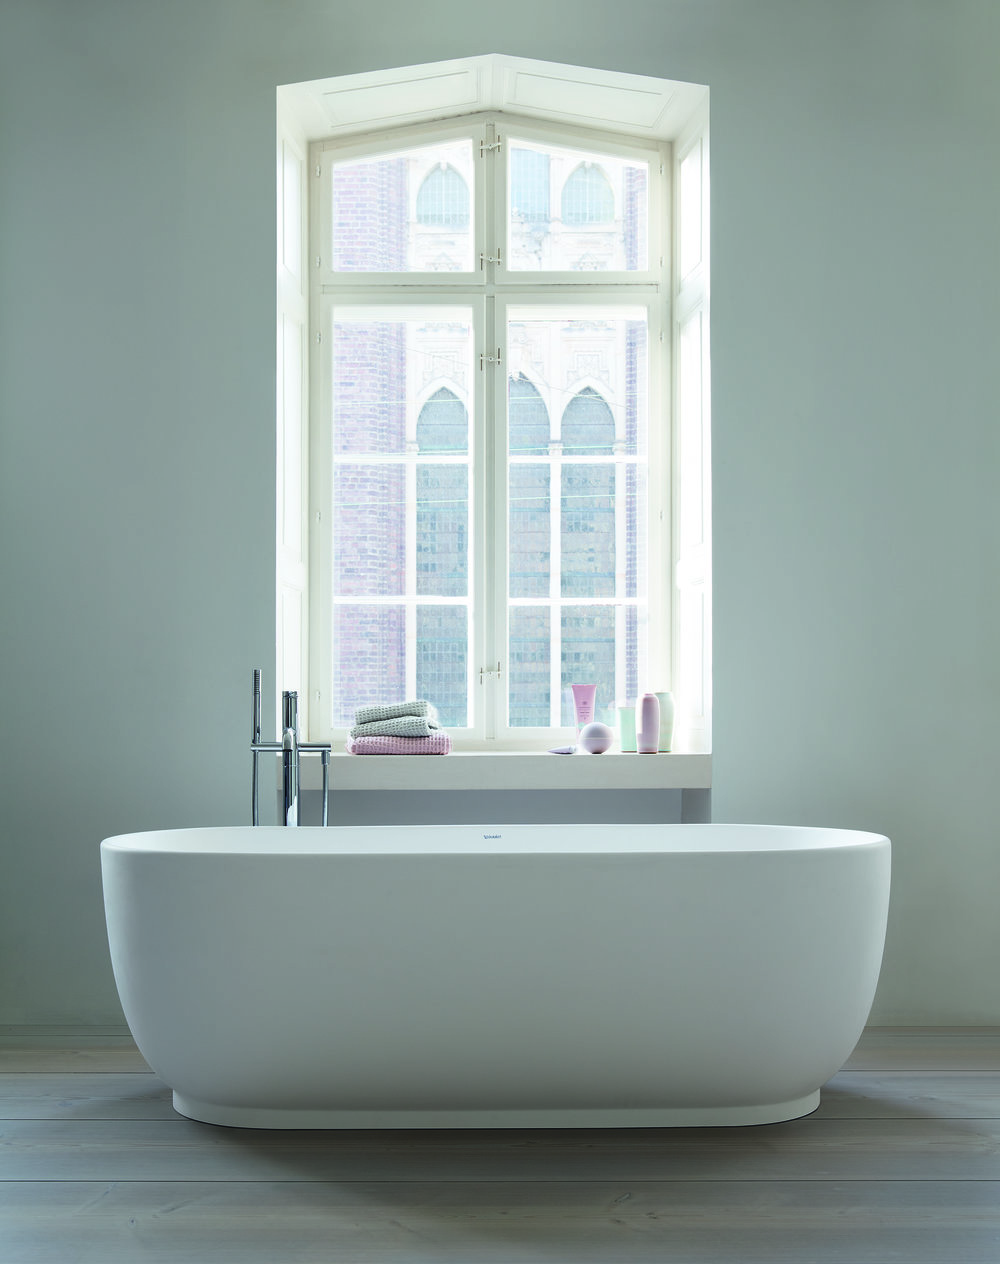 The LUV Bathroom range features oval shapes and fine lines, spacious basins and tubs and fine rims. DuraCeram is a material developed by DURAVIT which can be used to create particularly refined shapes with great stability. Available in glazed white, grey or sand tones with matte exterior surfaces. Available now at the Alcudia branch of DURAN.